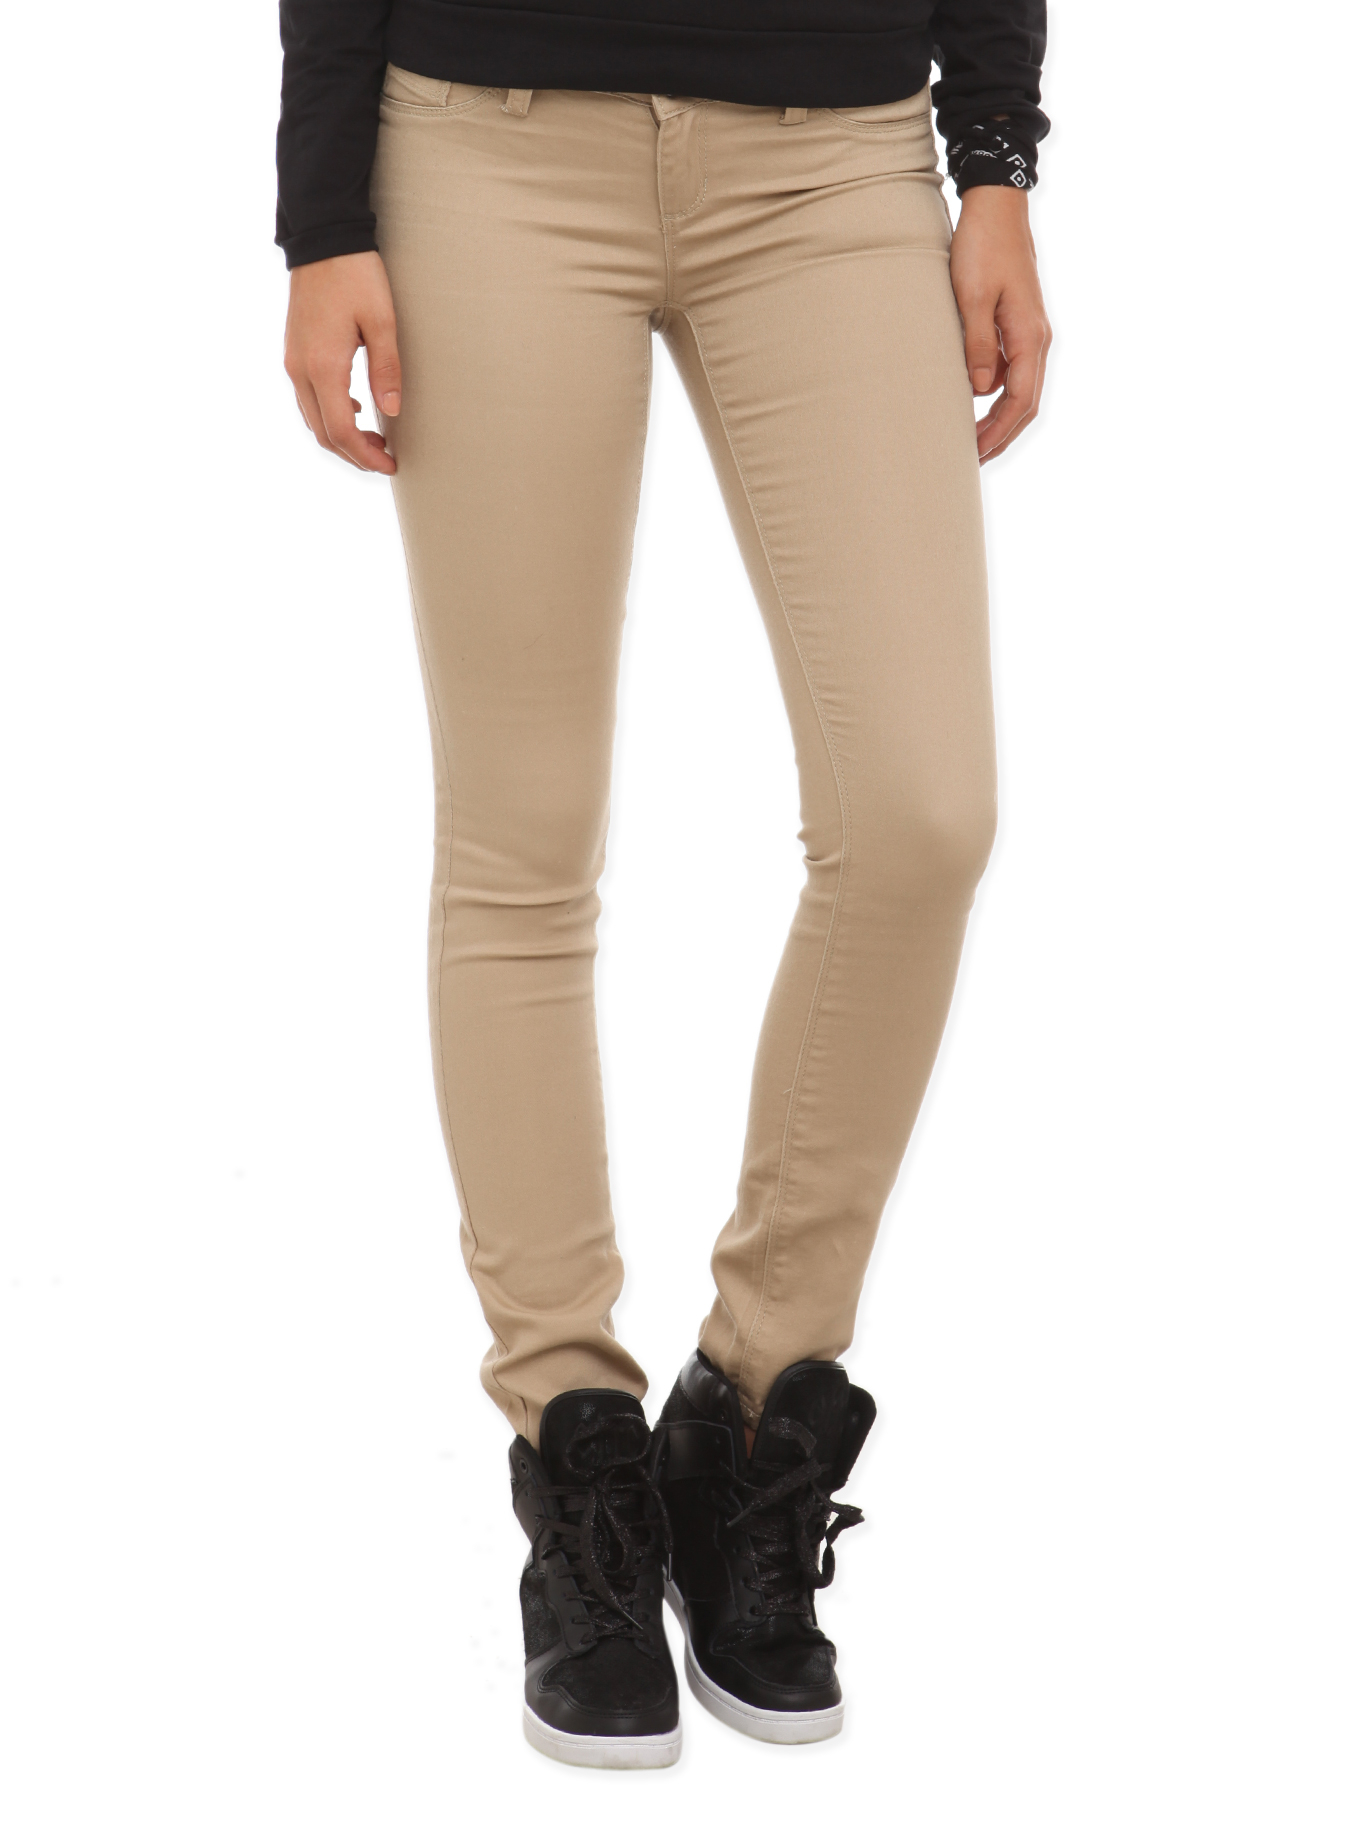 Khaki Pants Styling Ideas. Gap's women's chino pants are versatile and fashion-forward for a wide array of cool and effortlessly chic outfits. Pair loose and flirty skimmer khakis with a light tee shirt and sneakers for a laid-back, outdoor look.